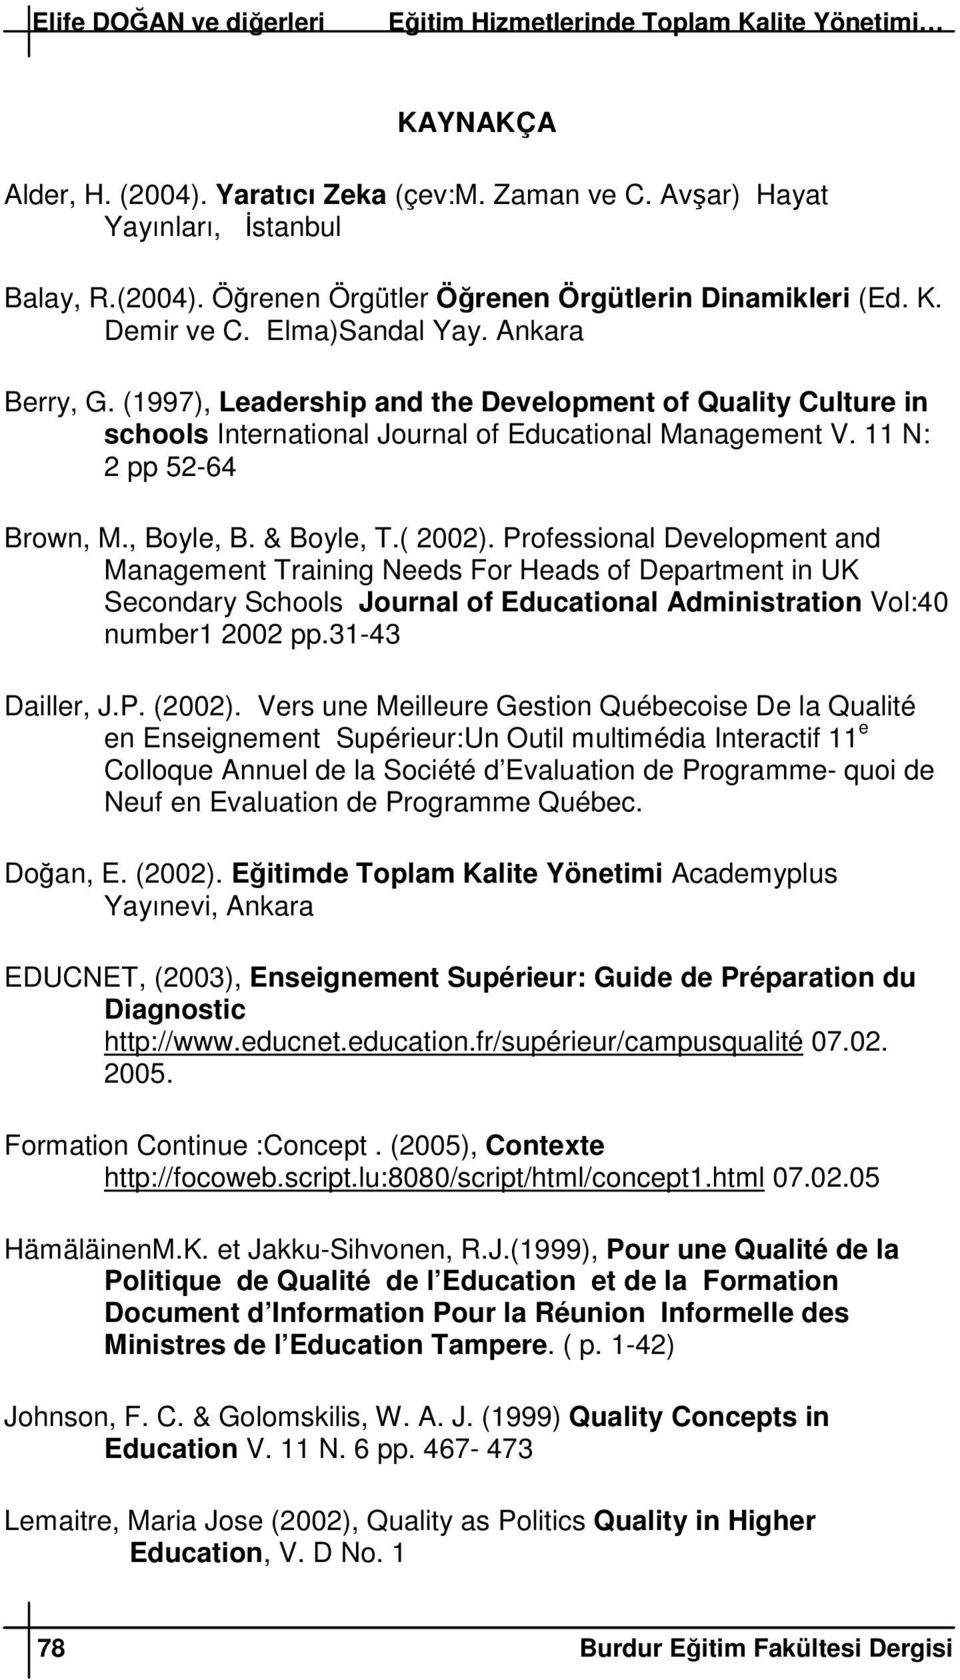 , Boyle, B. & Boyle, T.( 2002). Professional Development and Management Training Needs For Heads of Department in UK Secondary Schools Journal of Educational Administration Vol:40 number1 2002 pp.